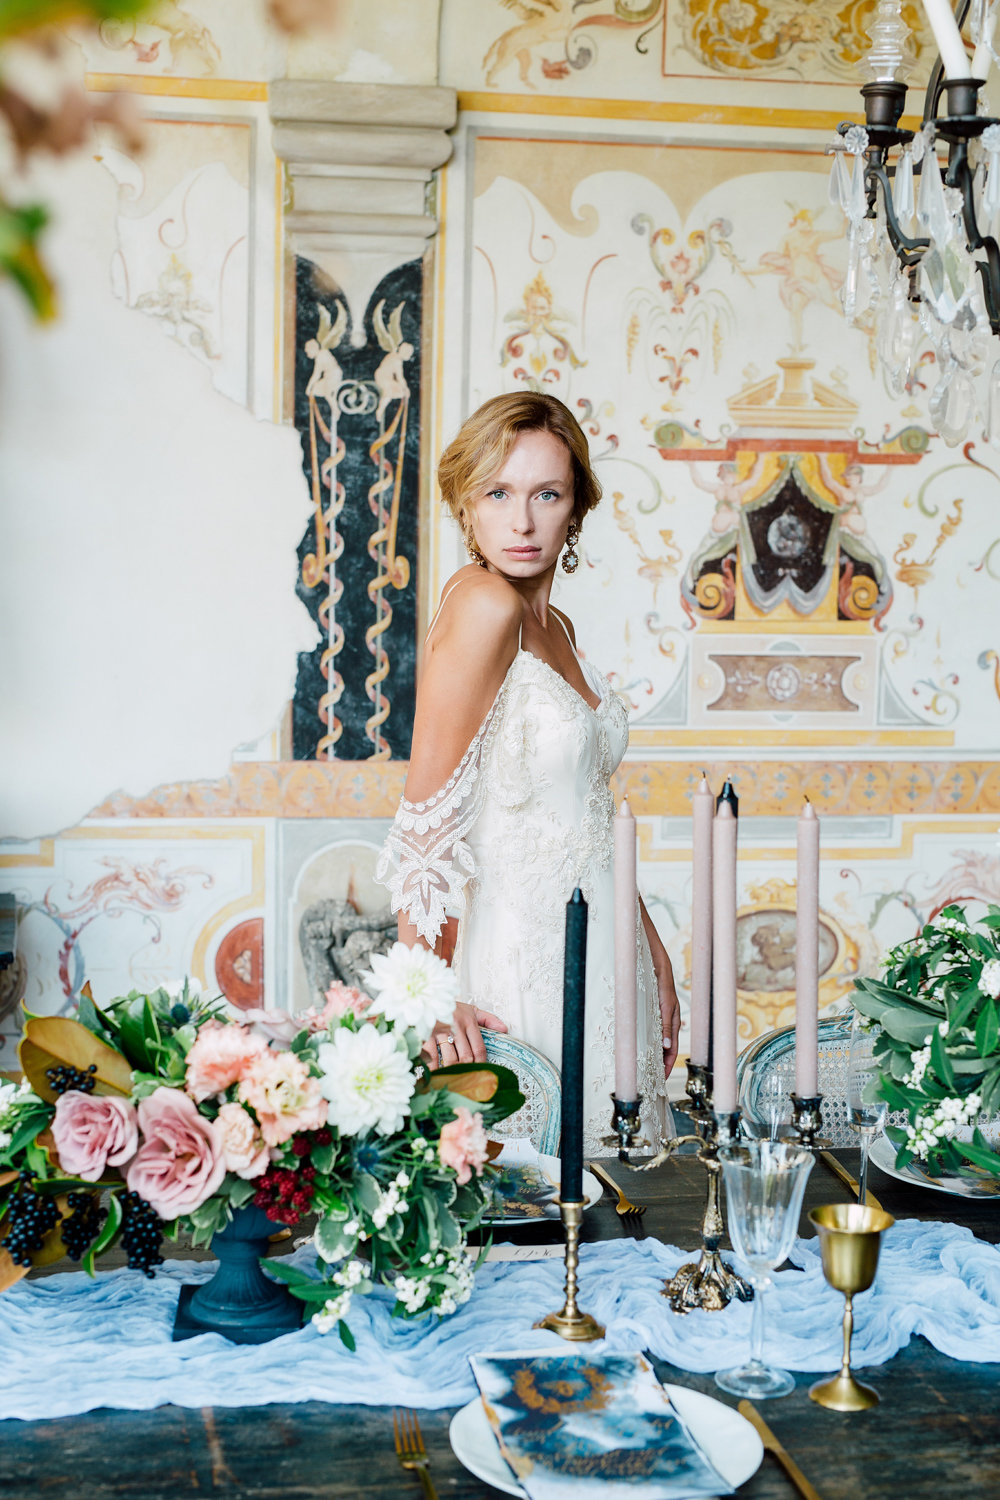 French Destination Wedding Venue with Interior Painted Walls